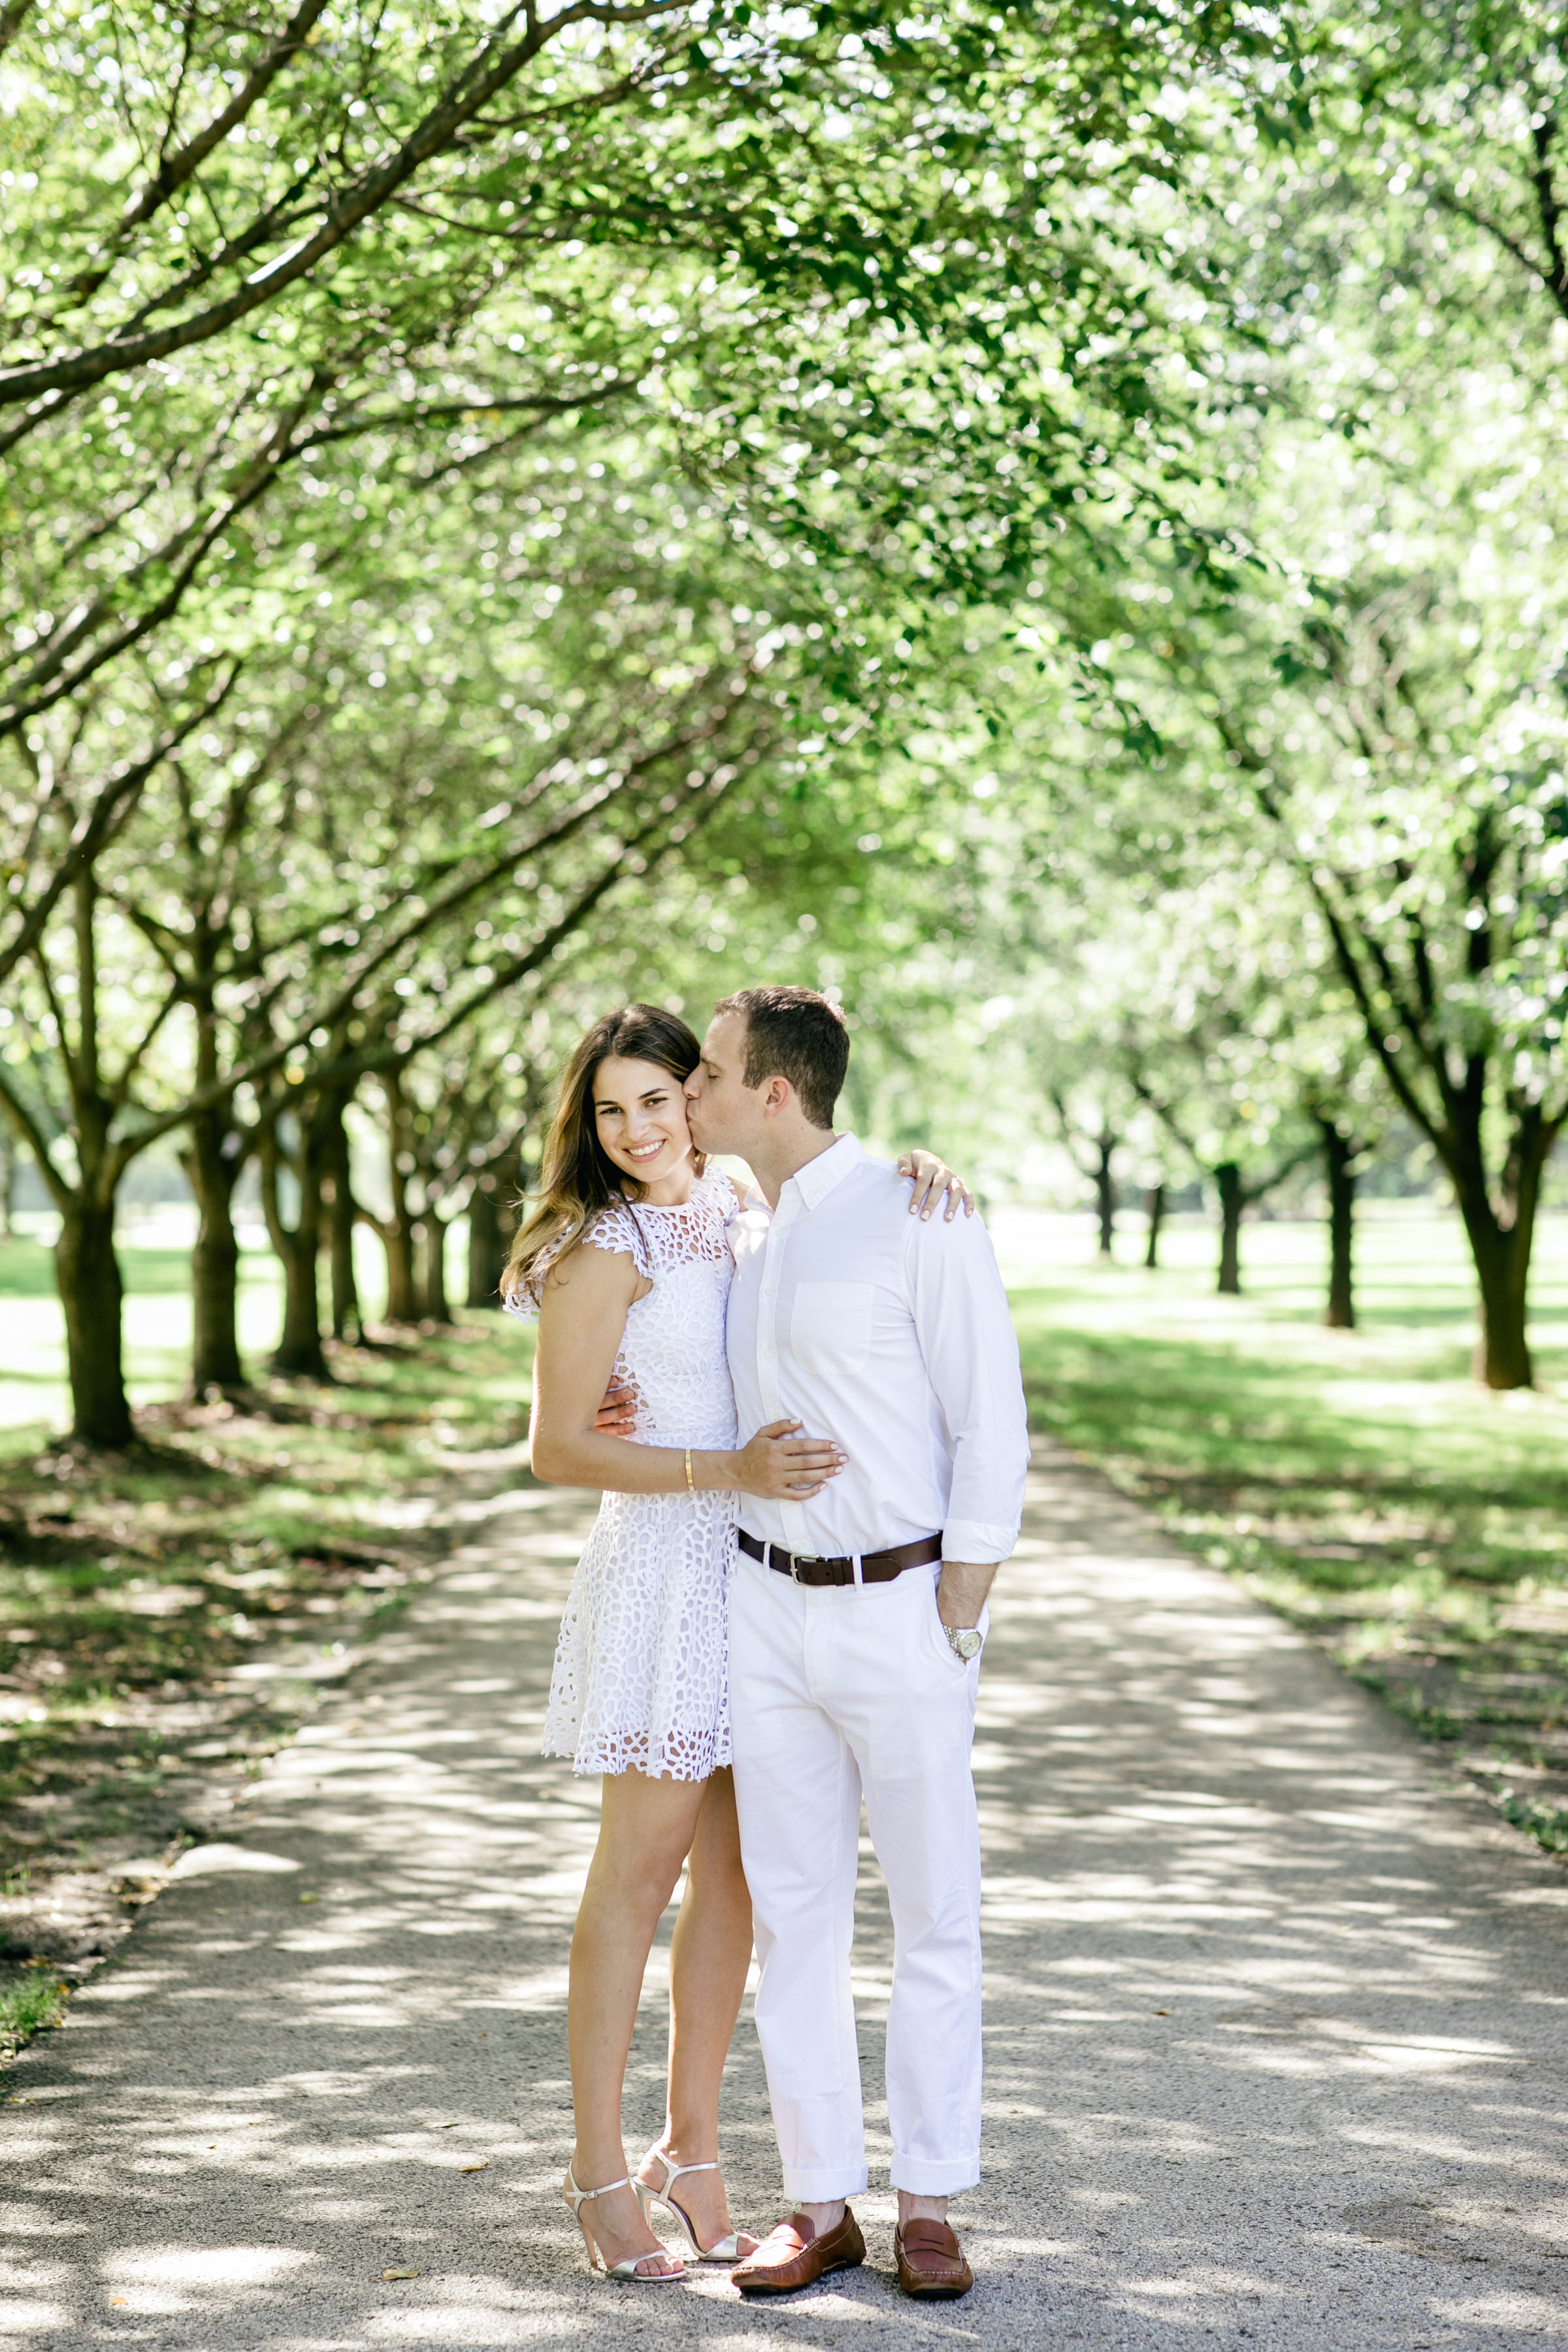 photography-family-natural-candid-engaged-fairmount-philadelphia-wedding-horticultural center-modern-lifestyle-23.JPG